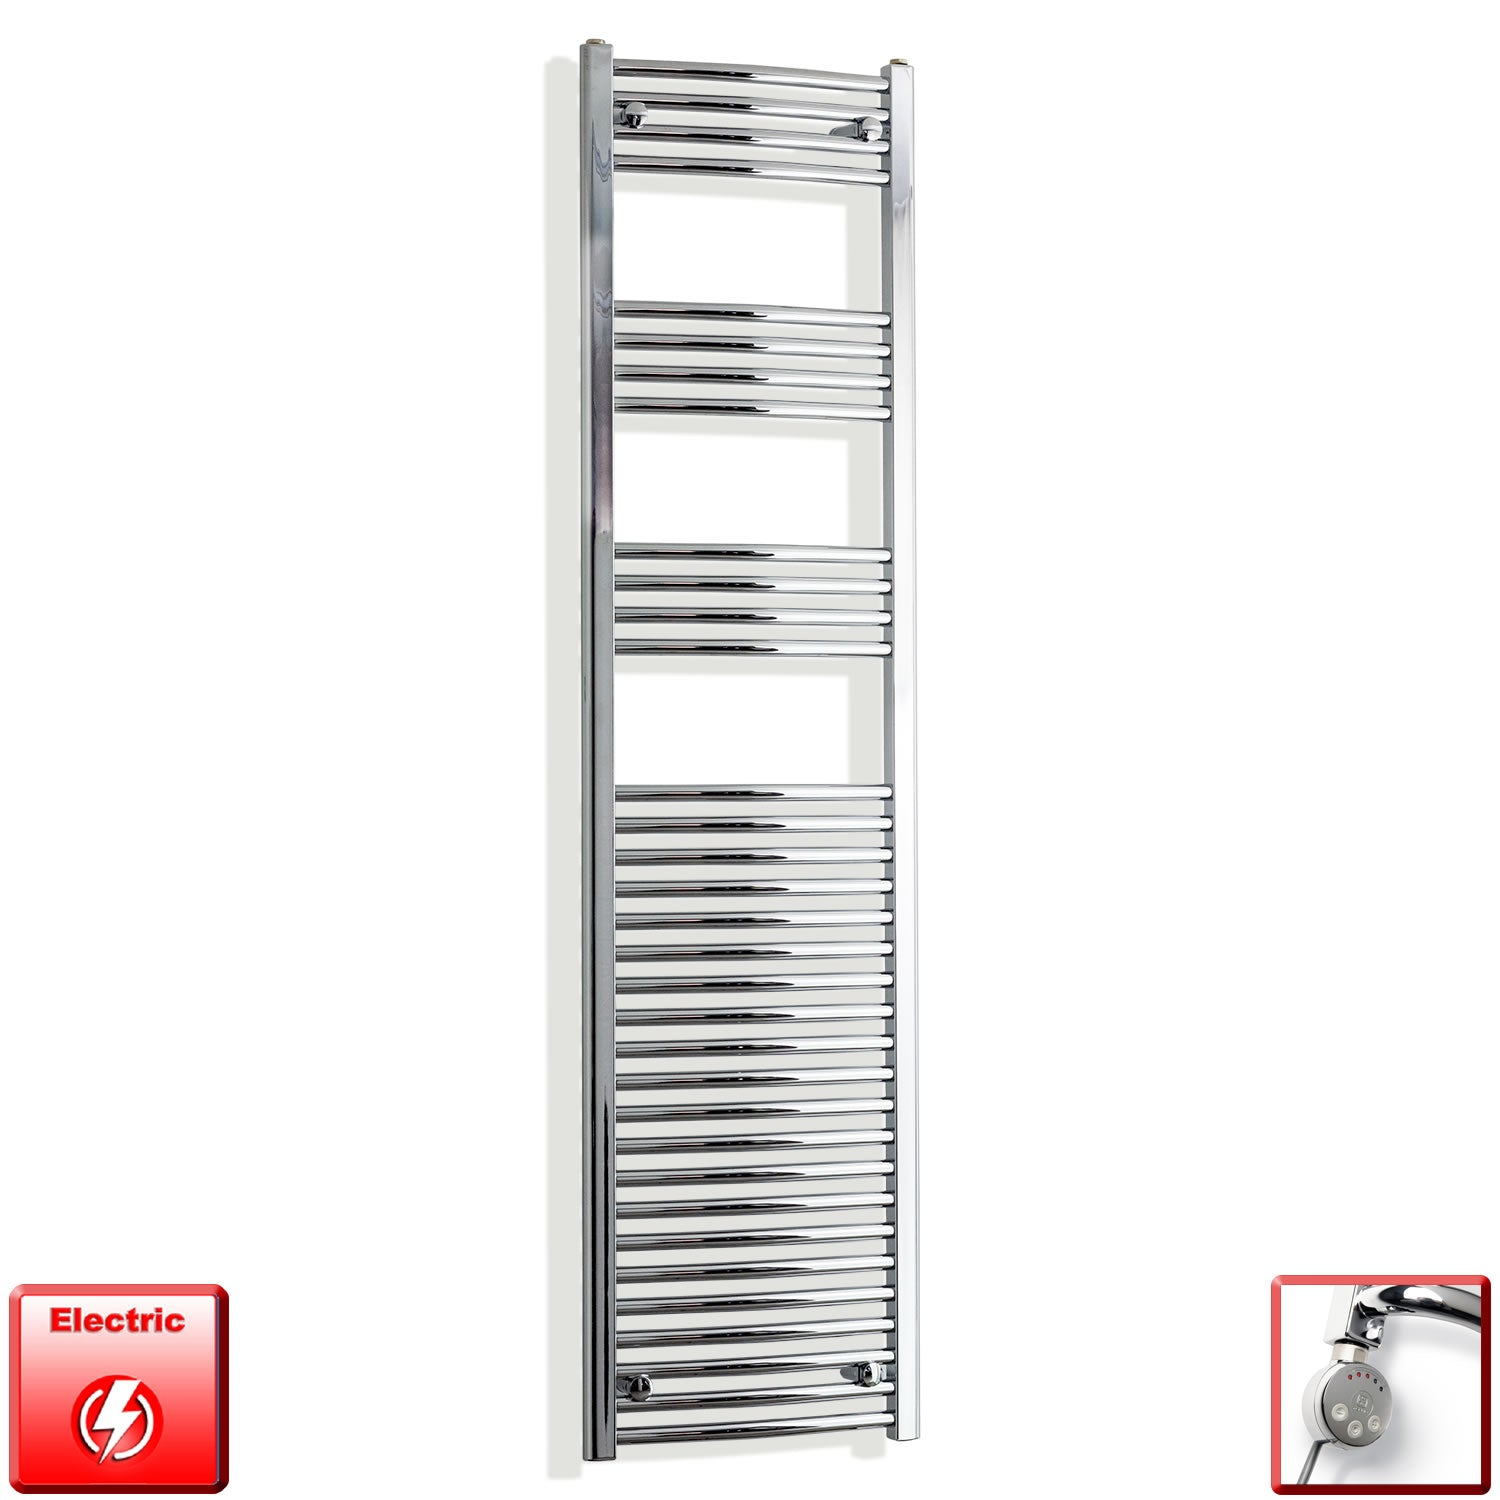 450mm Wide 1800mm High Pre-Filled Chrome Electric Towel Rail Radiator With Thermostatic MEG Element